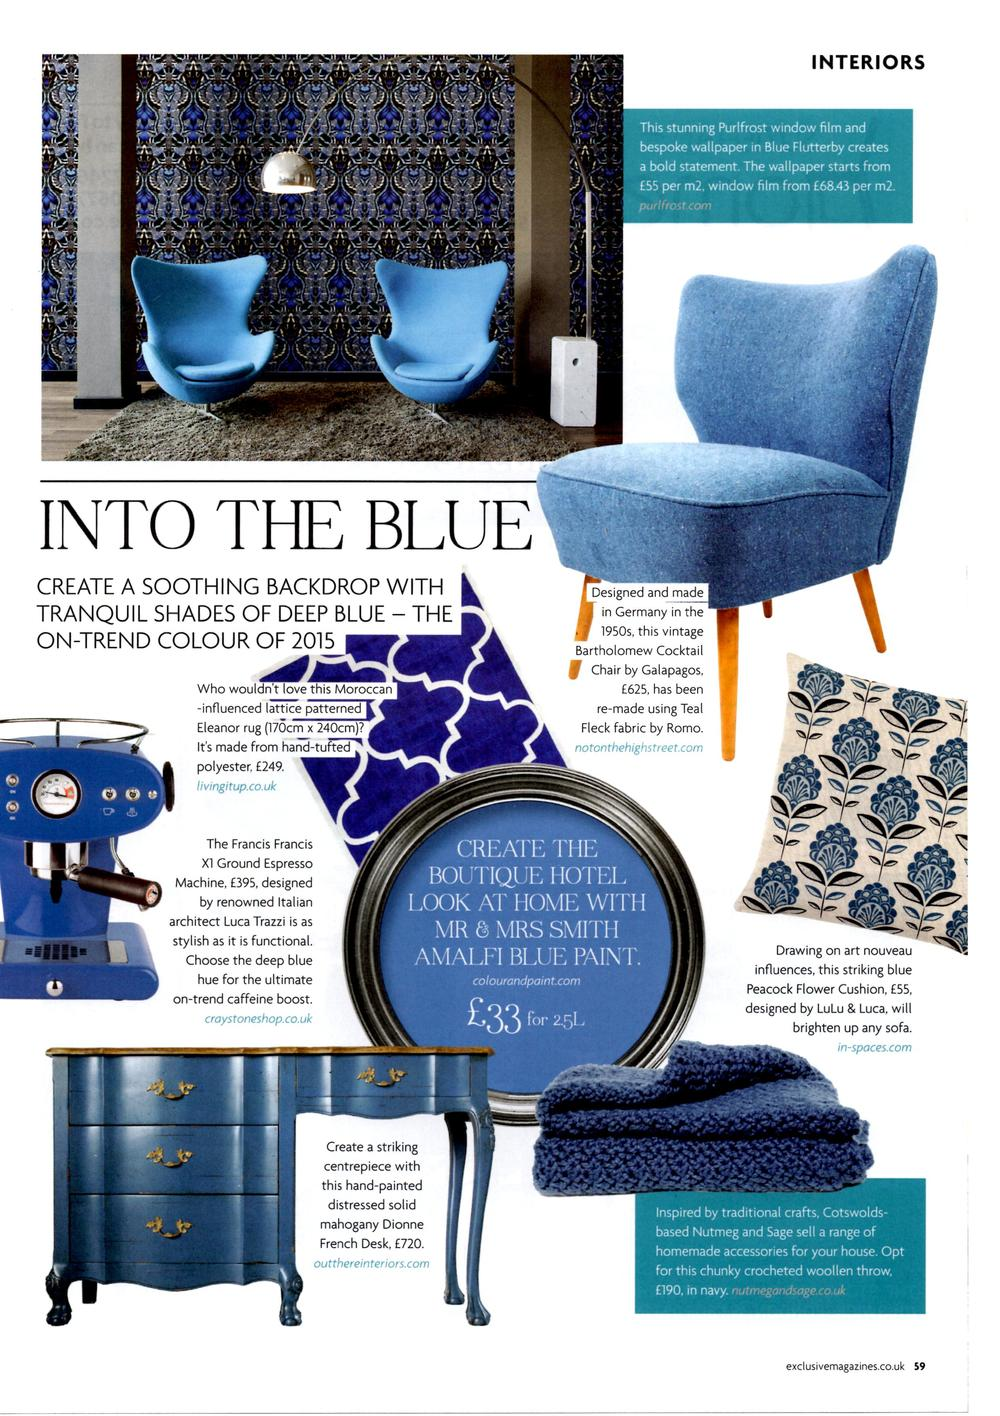 Into the Blue_interiors_Exclusive.jpg